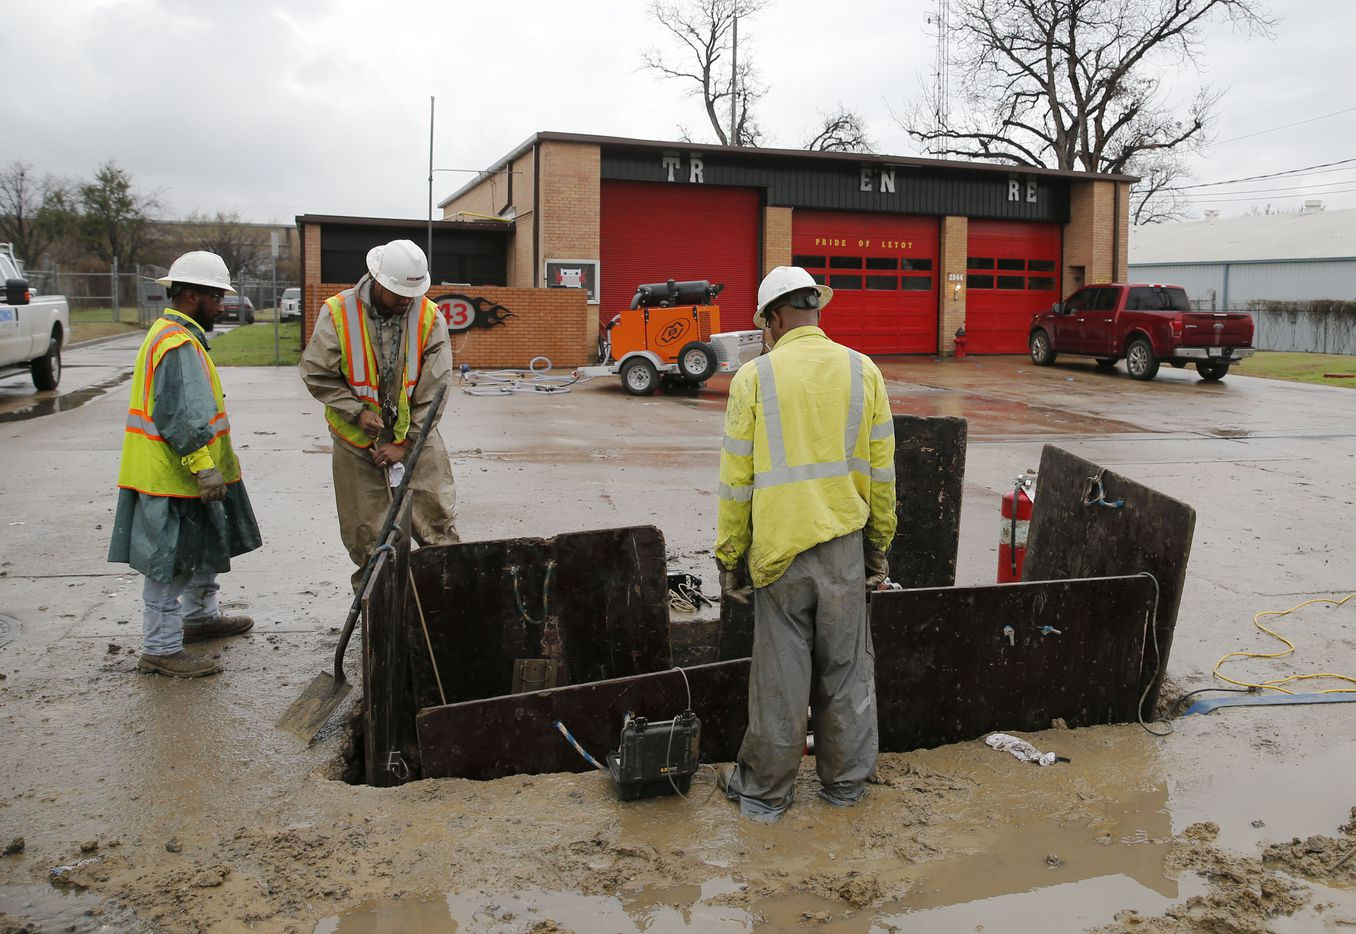 Construction crews work on a gas line in front of Dallas Fire Station 43 in Dallas on Wednesday, February 28, 2018. A gas leak forced the evacuation of a northwest Dallas fire station Tuesday evening not far from where a house exploded last week. (Vernon Bryant/The Dallas Morning News)